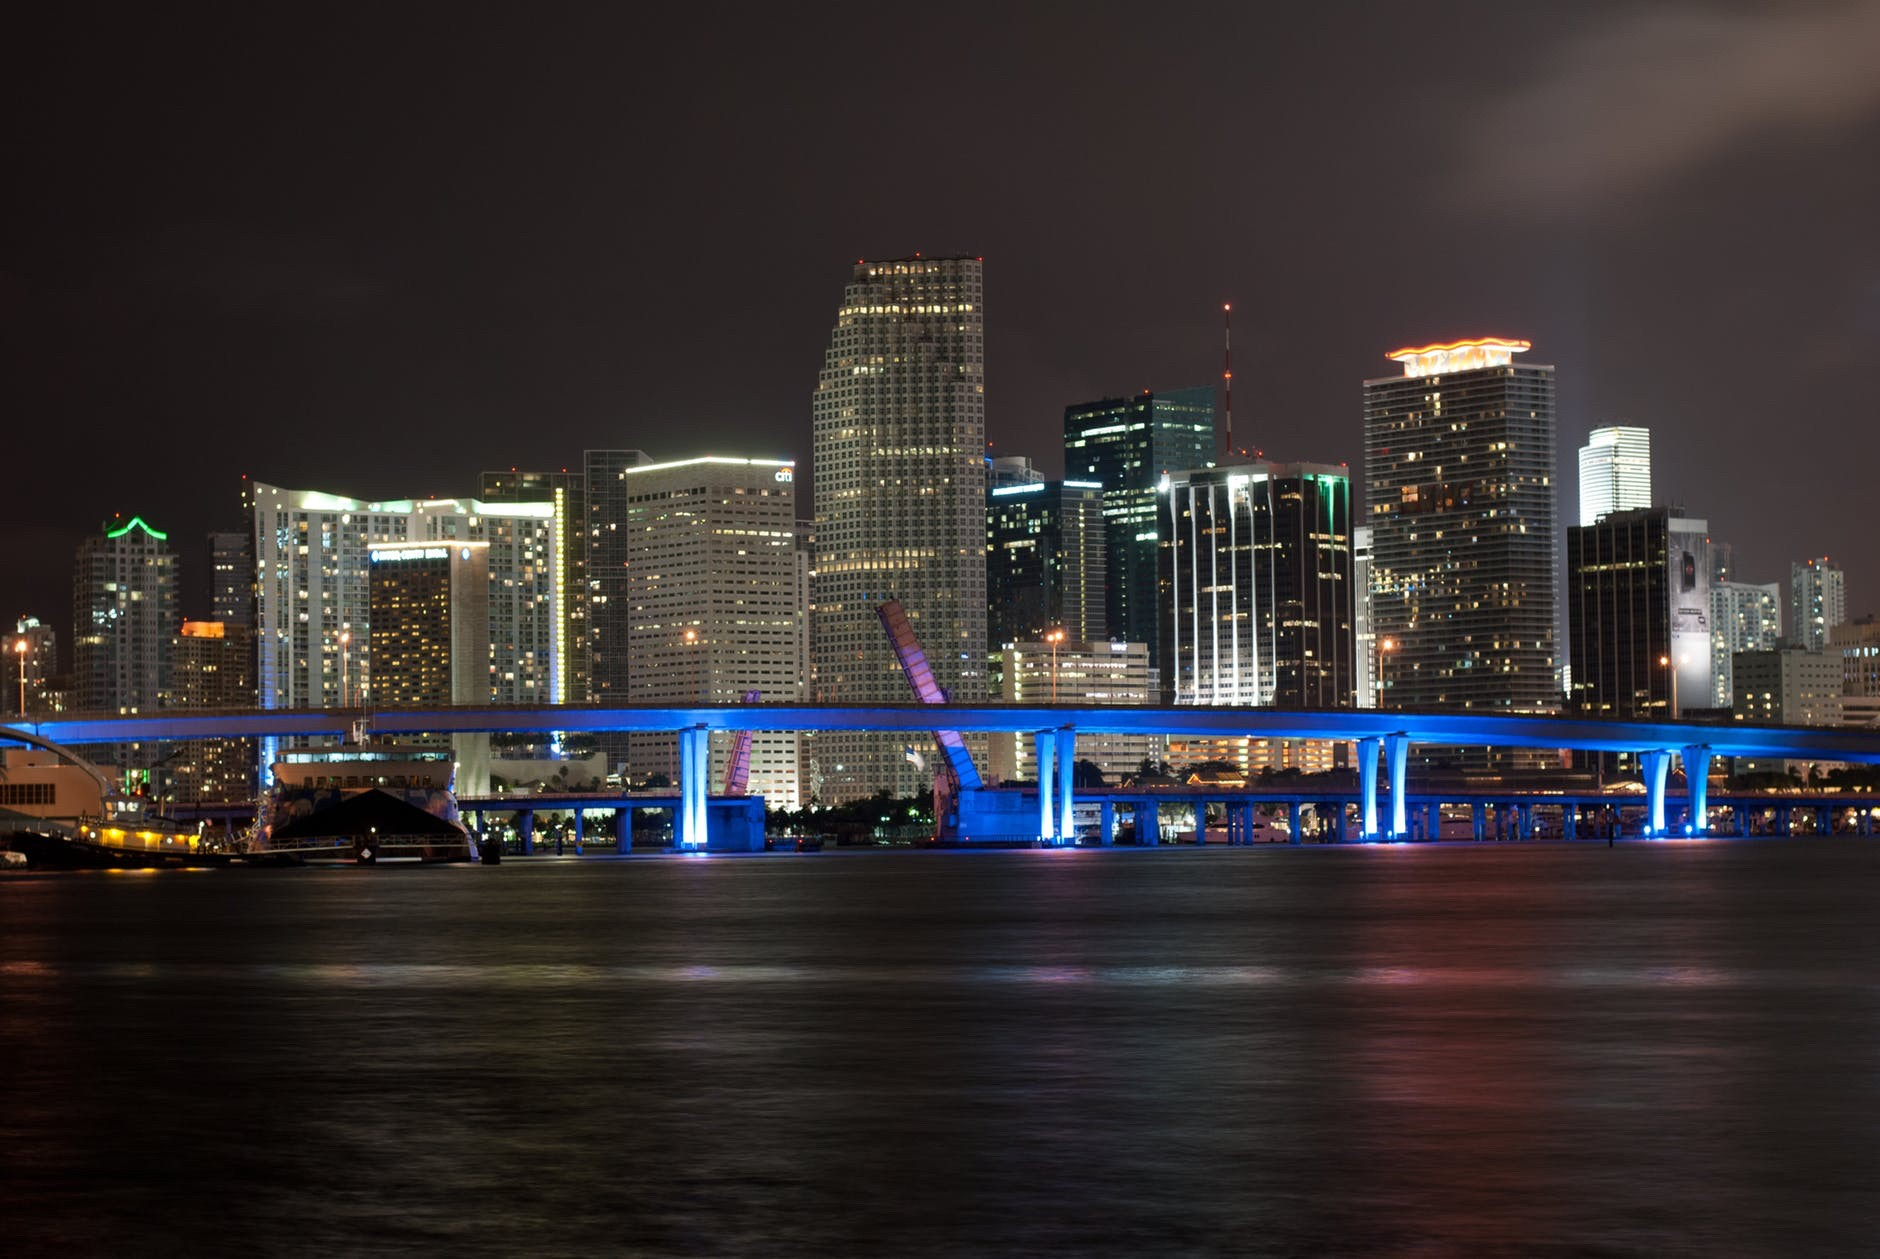 Flight Deal Round Trip From Los Angeles Area to Miami Area #losangeles #miami #extendedweekend